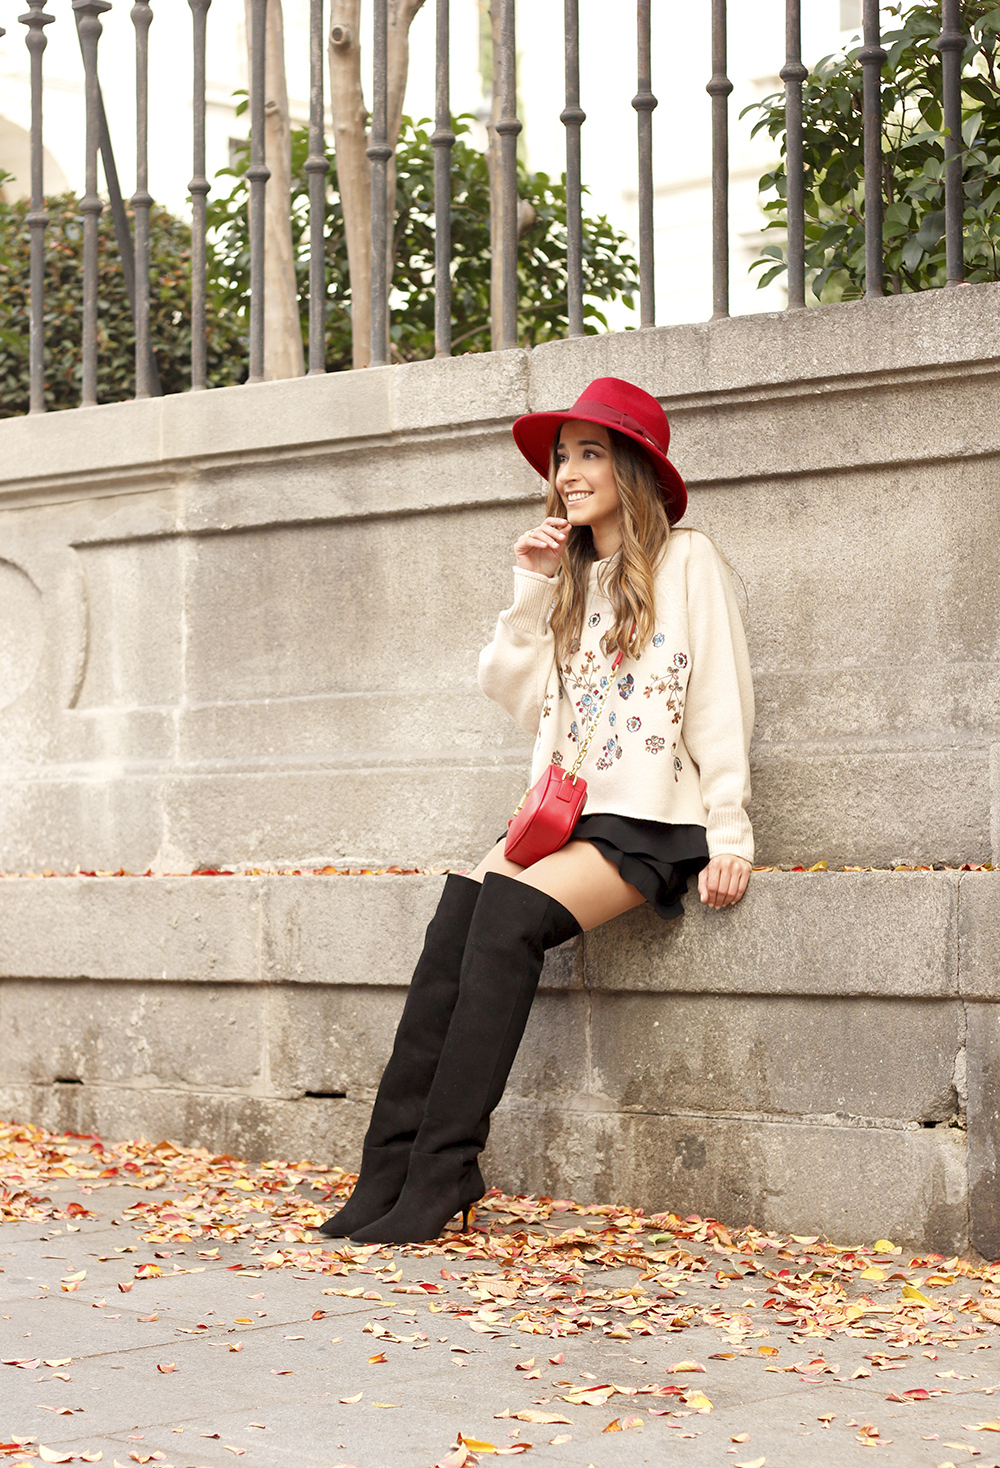 beige jersey with embroidered flowers over the knee black boots red hat street style fashion inspiration outfit09